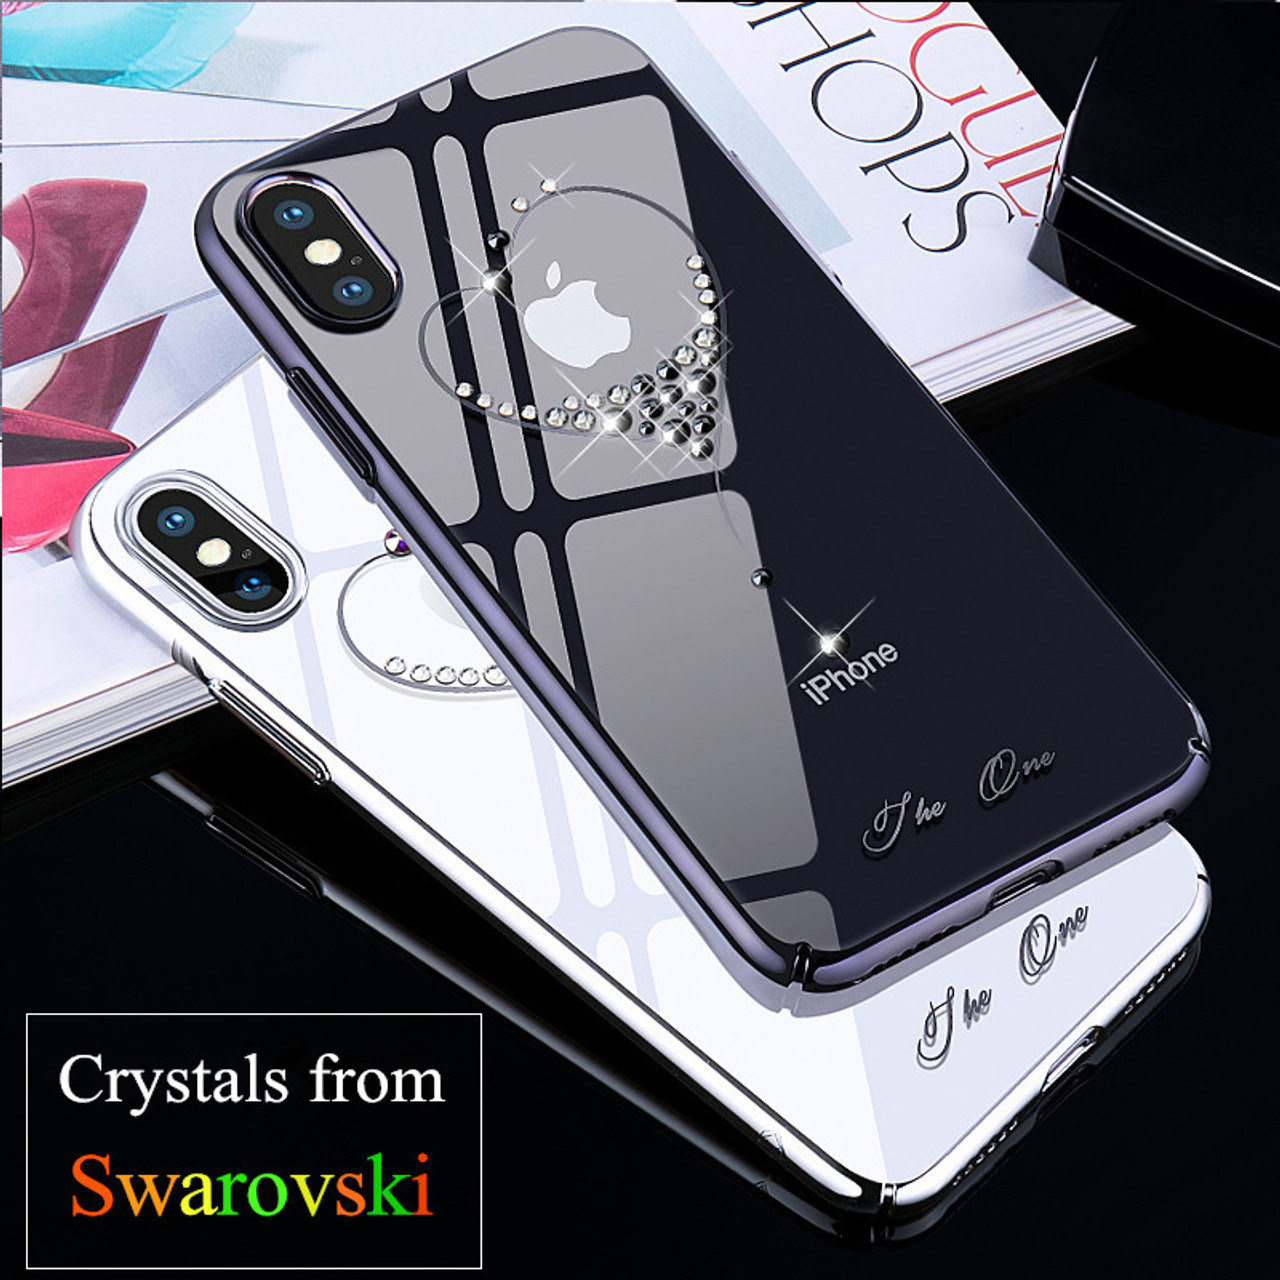 KINGXBAR for iPhone X 10 Case Crystals From Swarovski PC Hard Crystal Diamond Rhinestone Case for 20327.1529048017